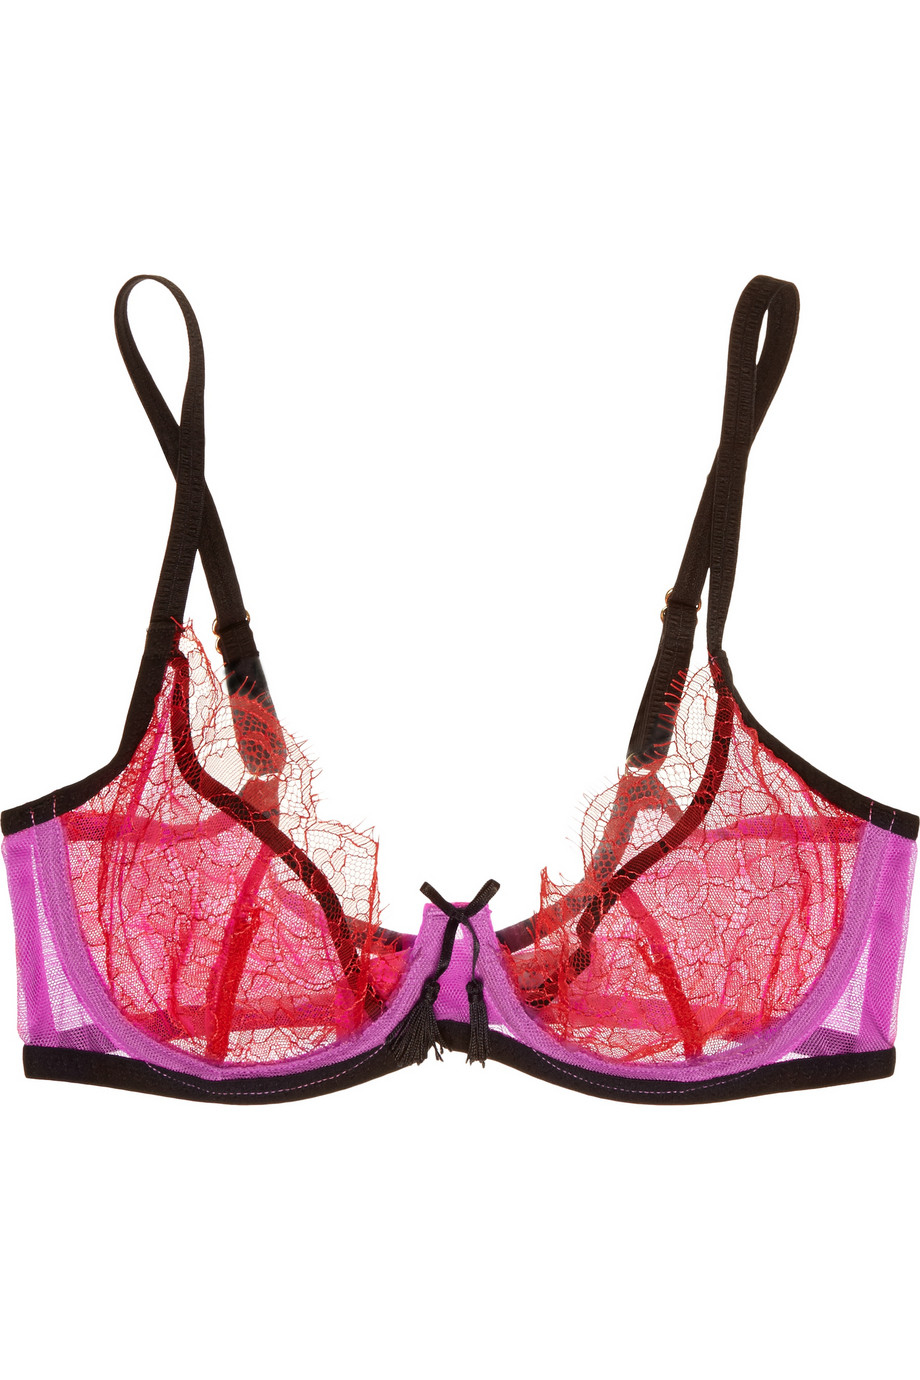 Lyst - Agent Provocateur Megan Lace And Stretch-Tulle Plunge Bra in Pink a69c12b7a